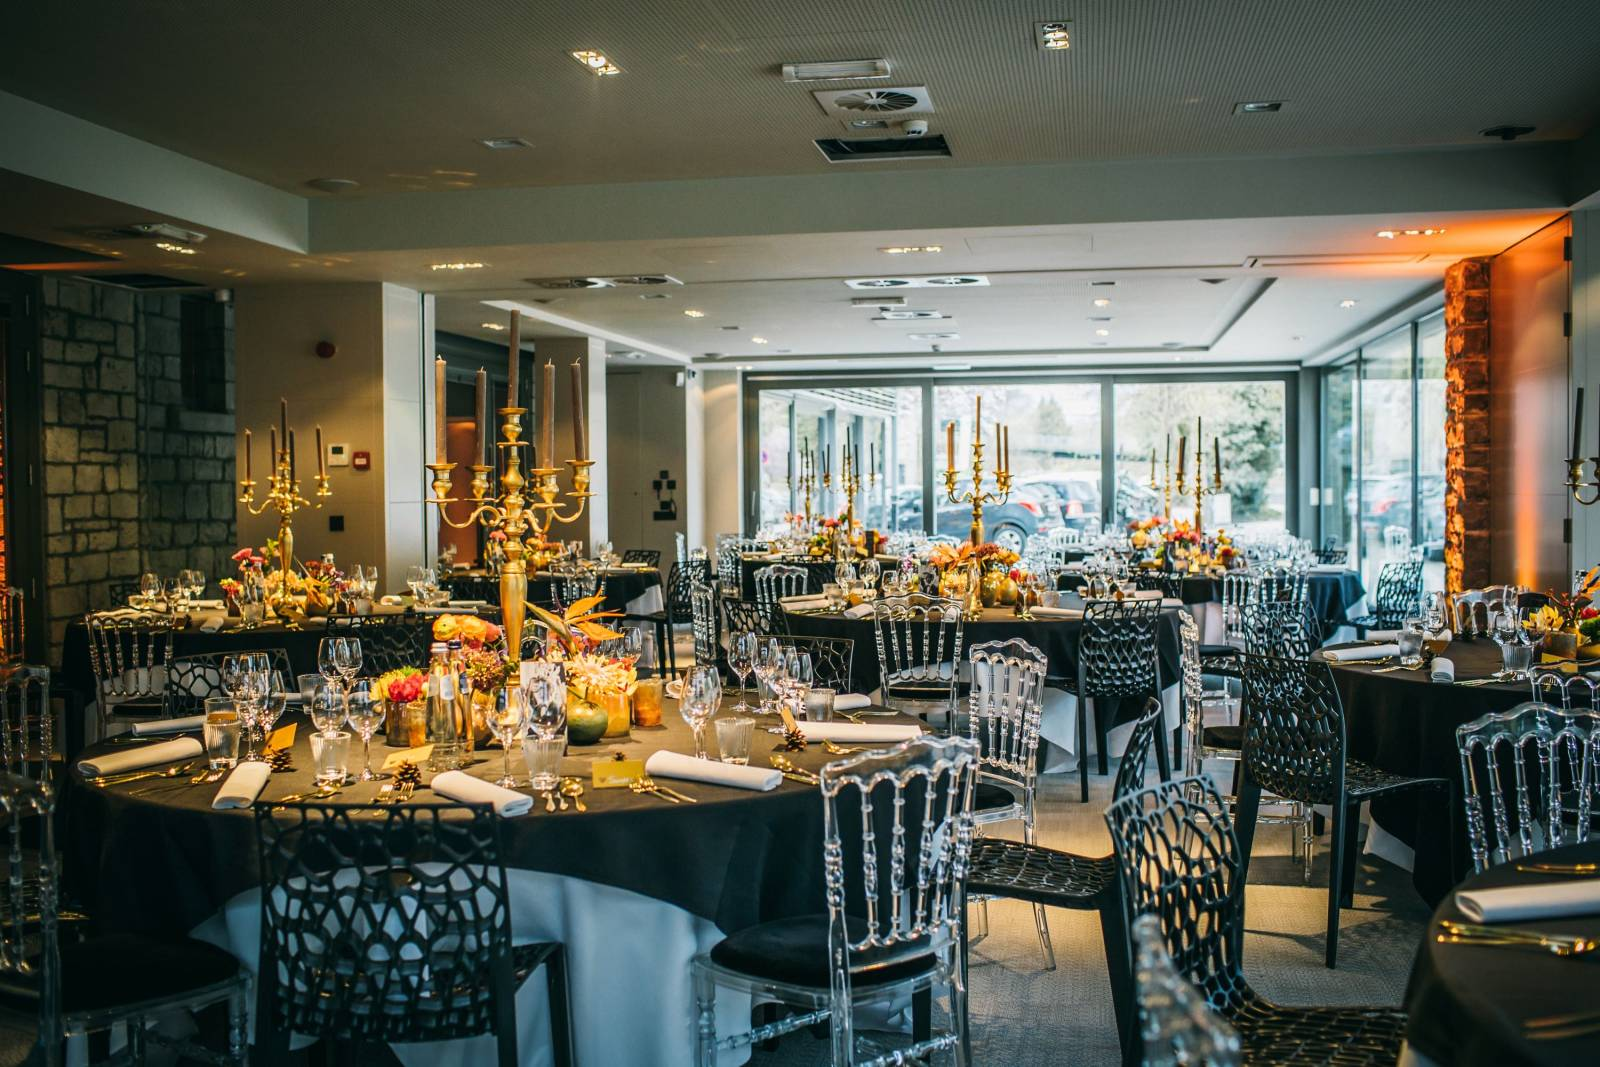 Real Wedding - Sanglier des Ardennes - House of Weddings  - 9